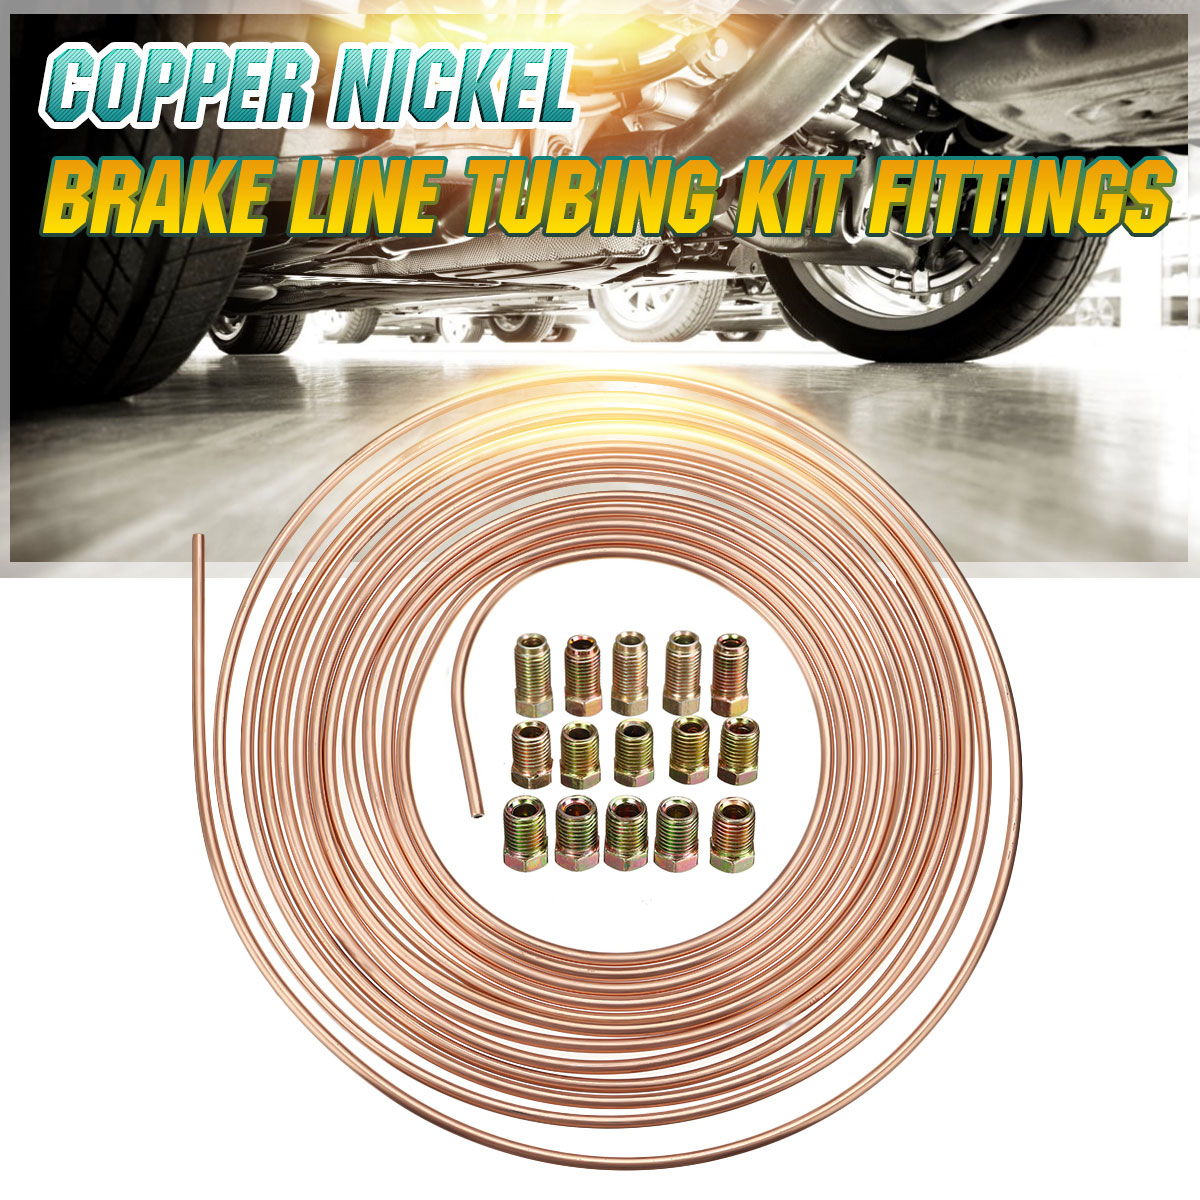 """Roll Coil of 3//16/"""" OD Copper Nickel Brake Line Tubing Kit with Fittings 25 Ft"""